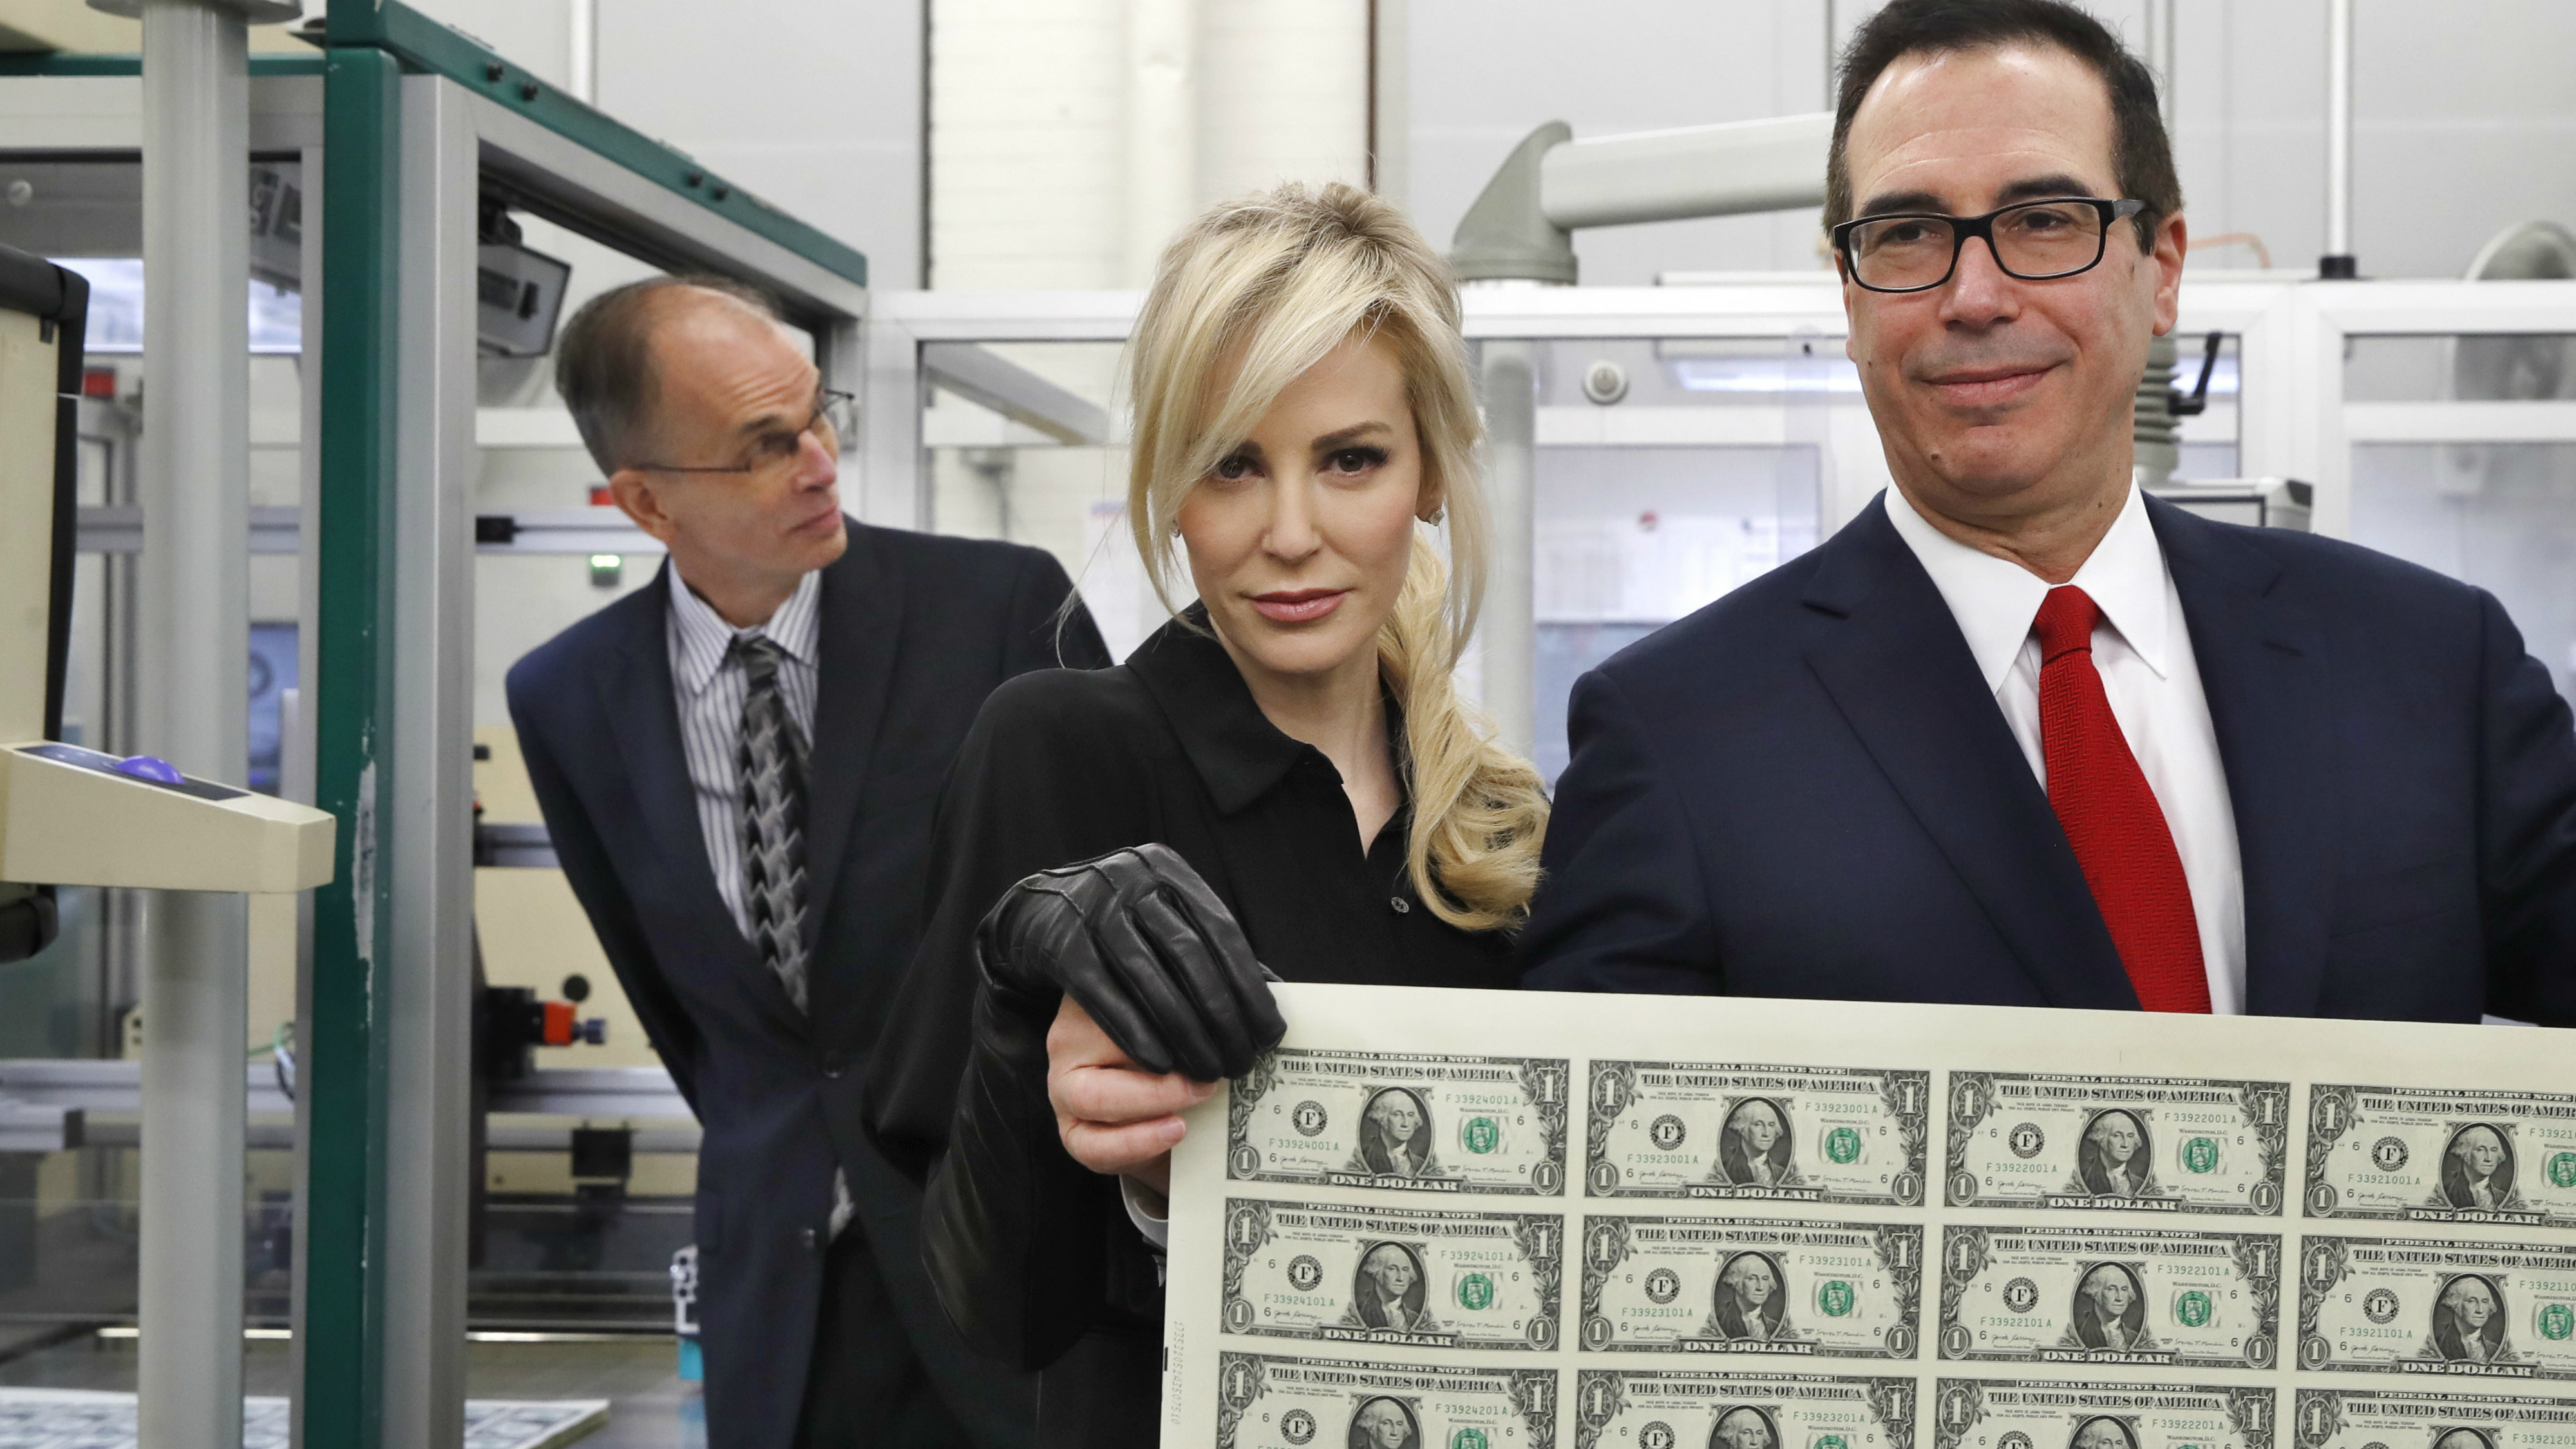 Treasury Secretary Steven Mnuchin, right, and his wife Louise Linton, hold up a sheet of new $1 bills.